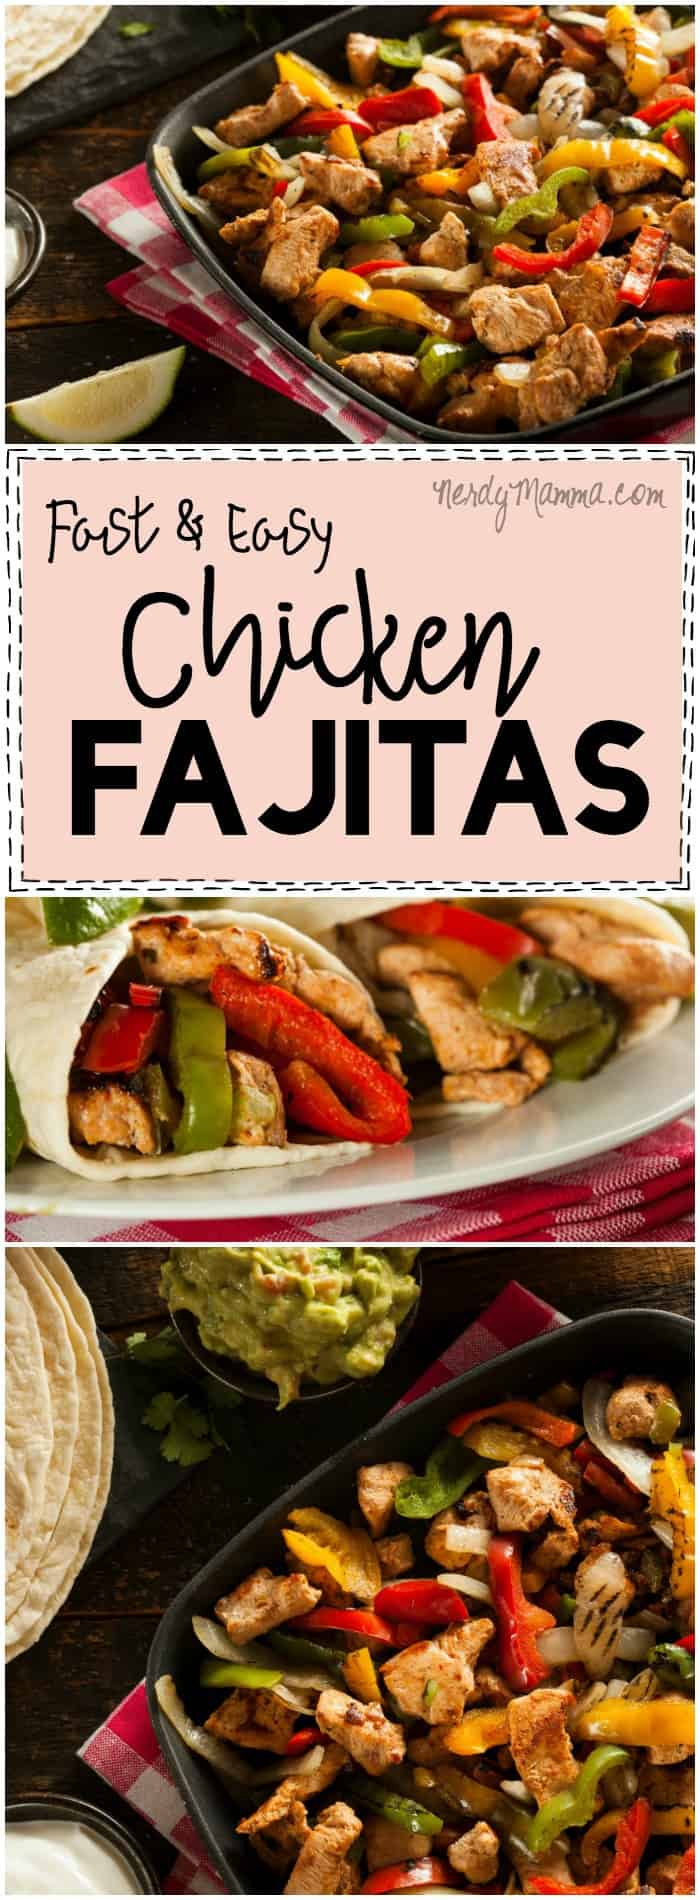 I. Just. LOVE. This recipe for fast and easy Chicken Fajitas! So simple...but so yummy!